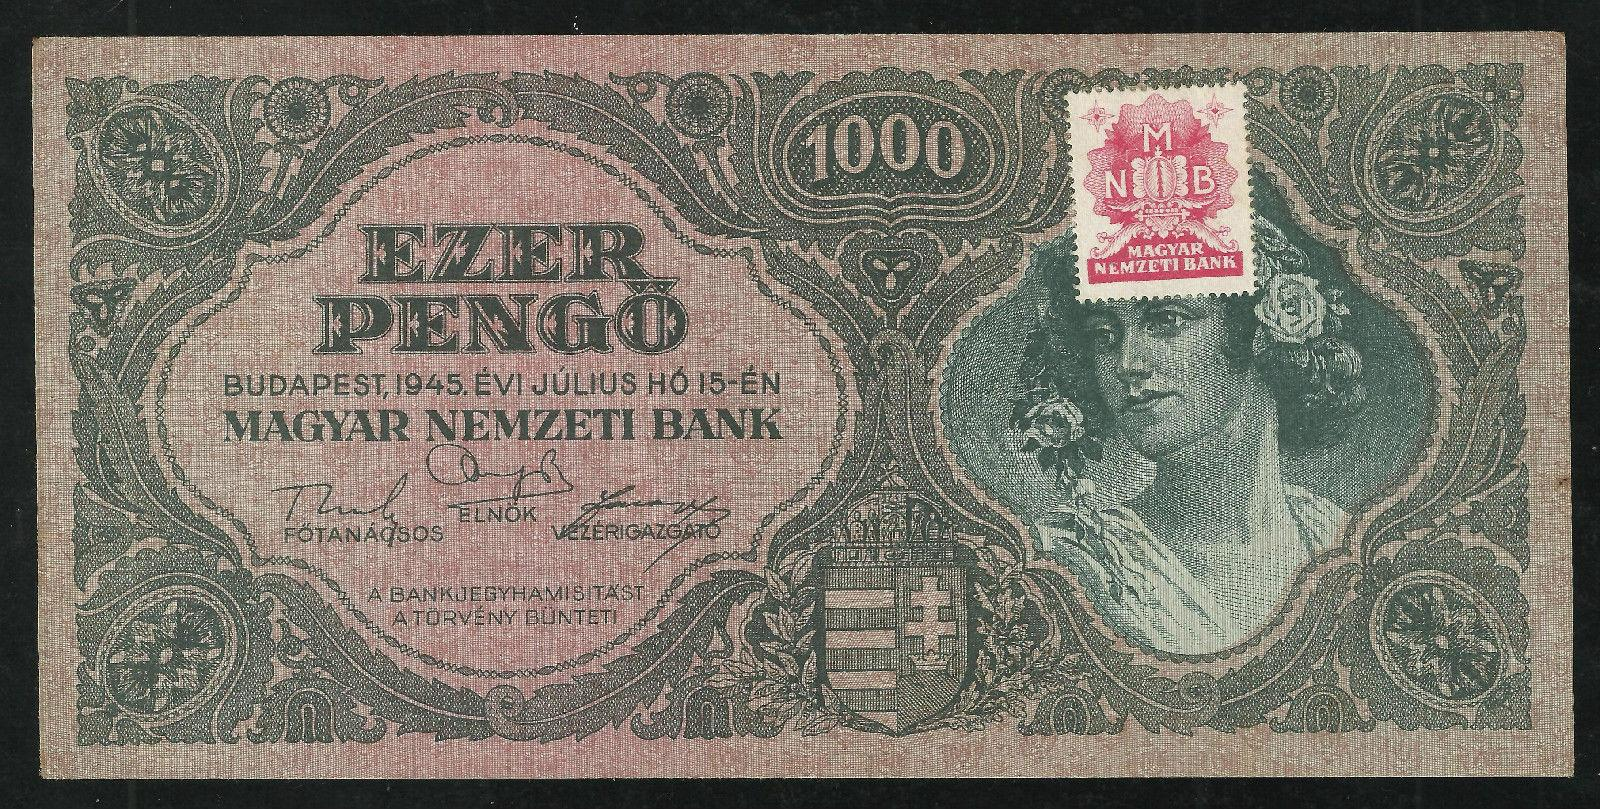 Hungary 1945 1000 pengo with red stamps vf-xf